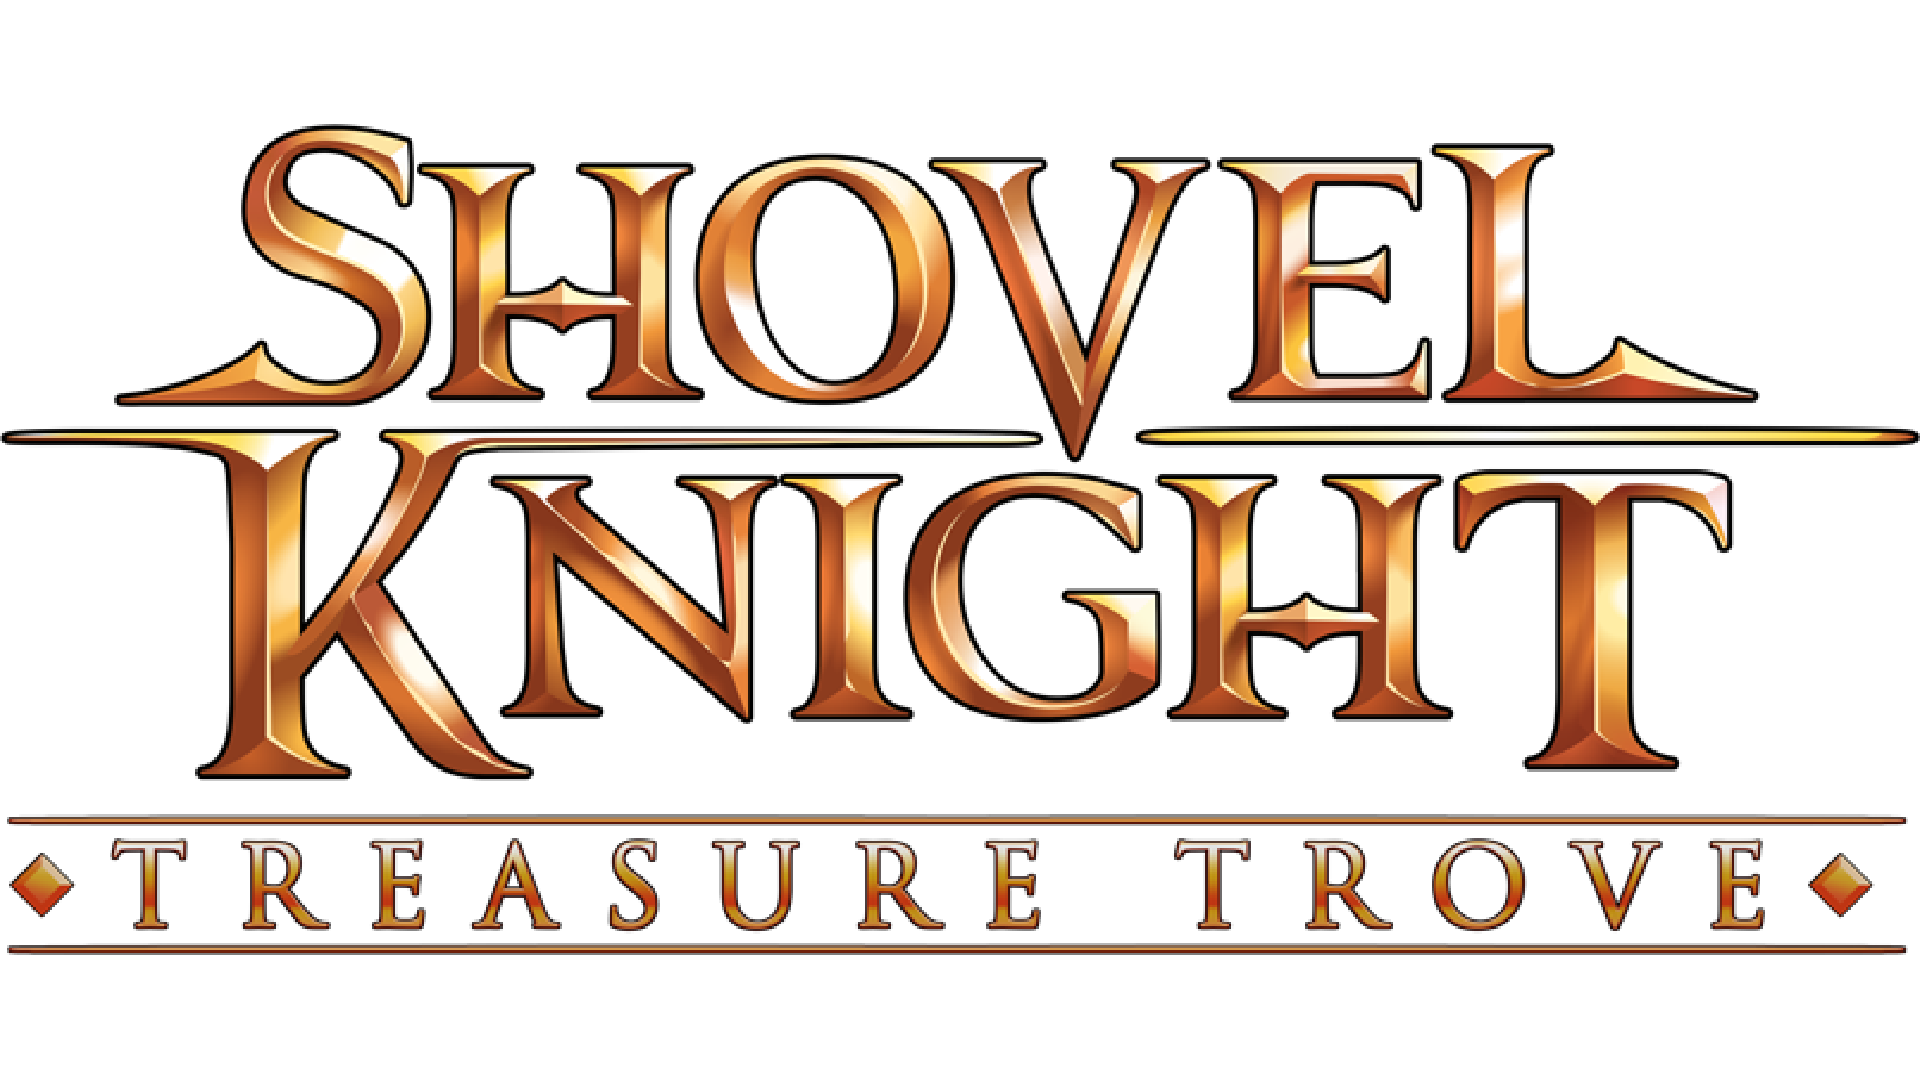 Shovel Knight: Treasure Trove Logo